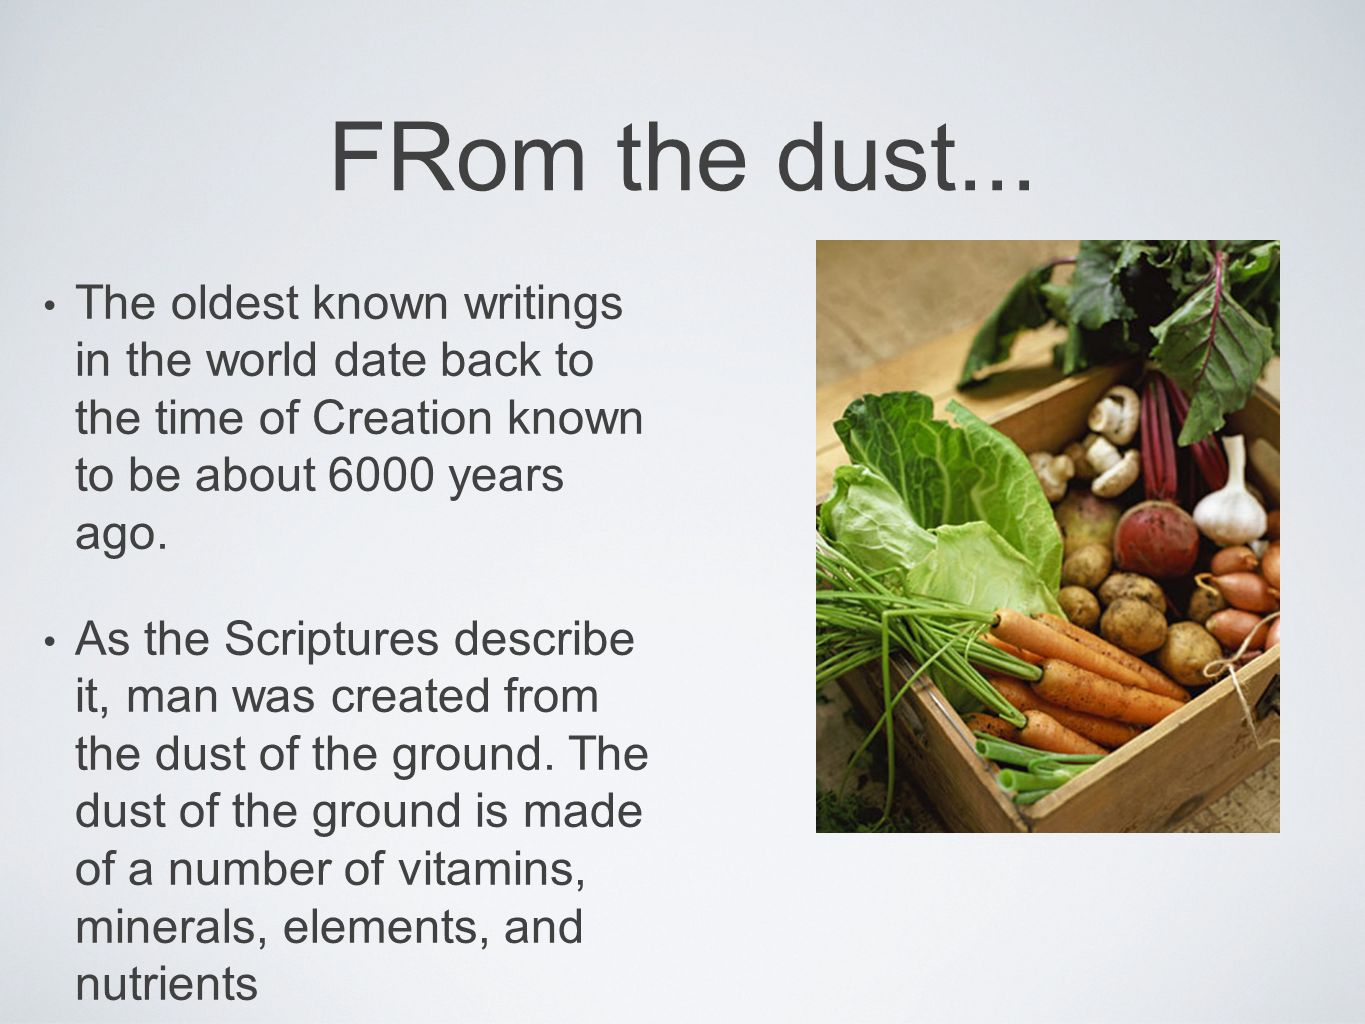 FRom the dust... The oldest known writings in the world date back to the time of Creation known to be about 6000 years ago.